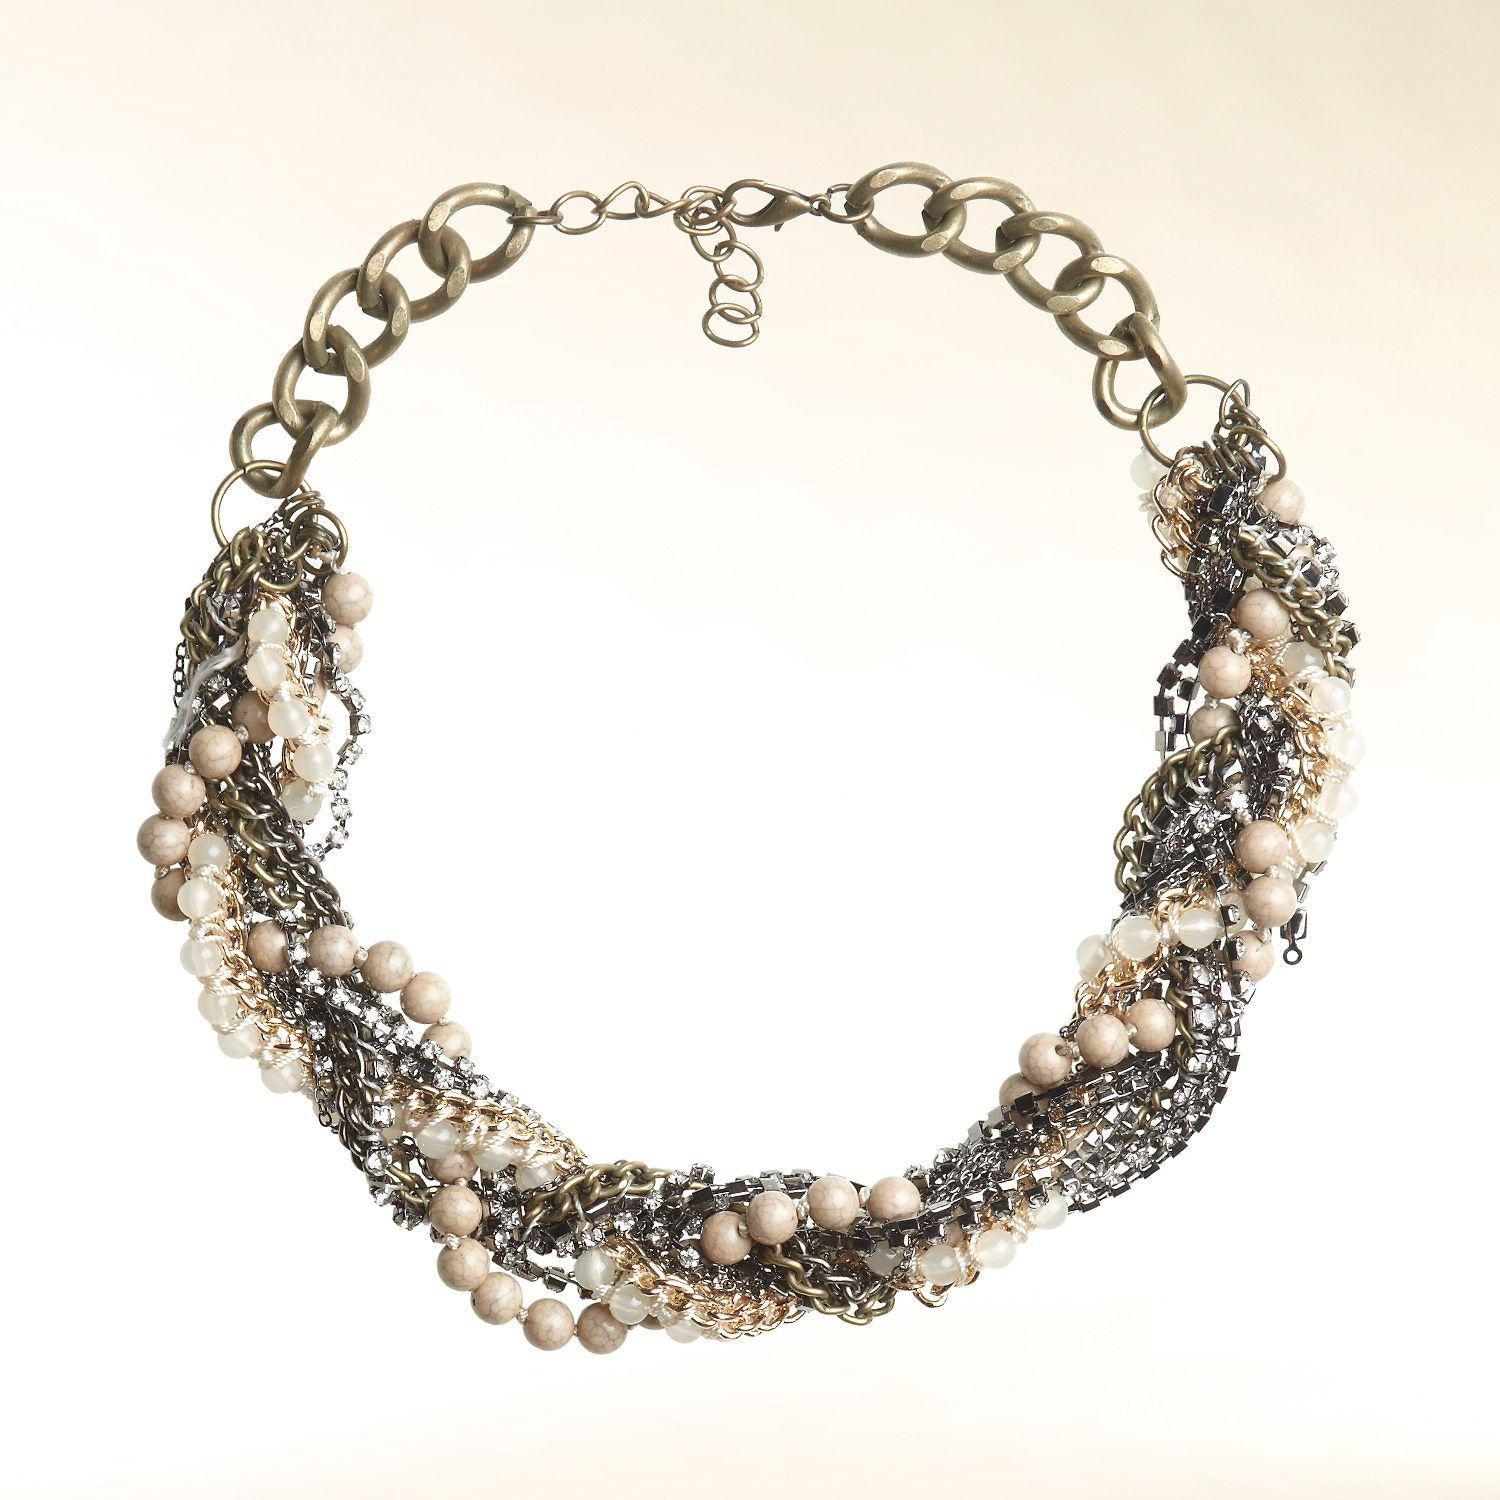 Statement necklace with braid-effect